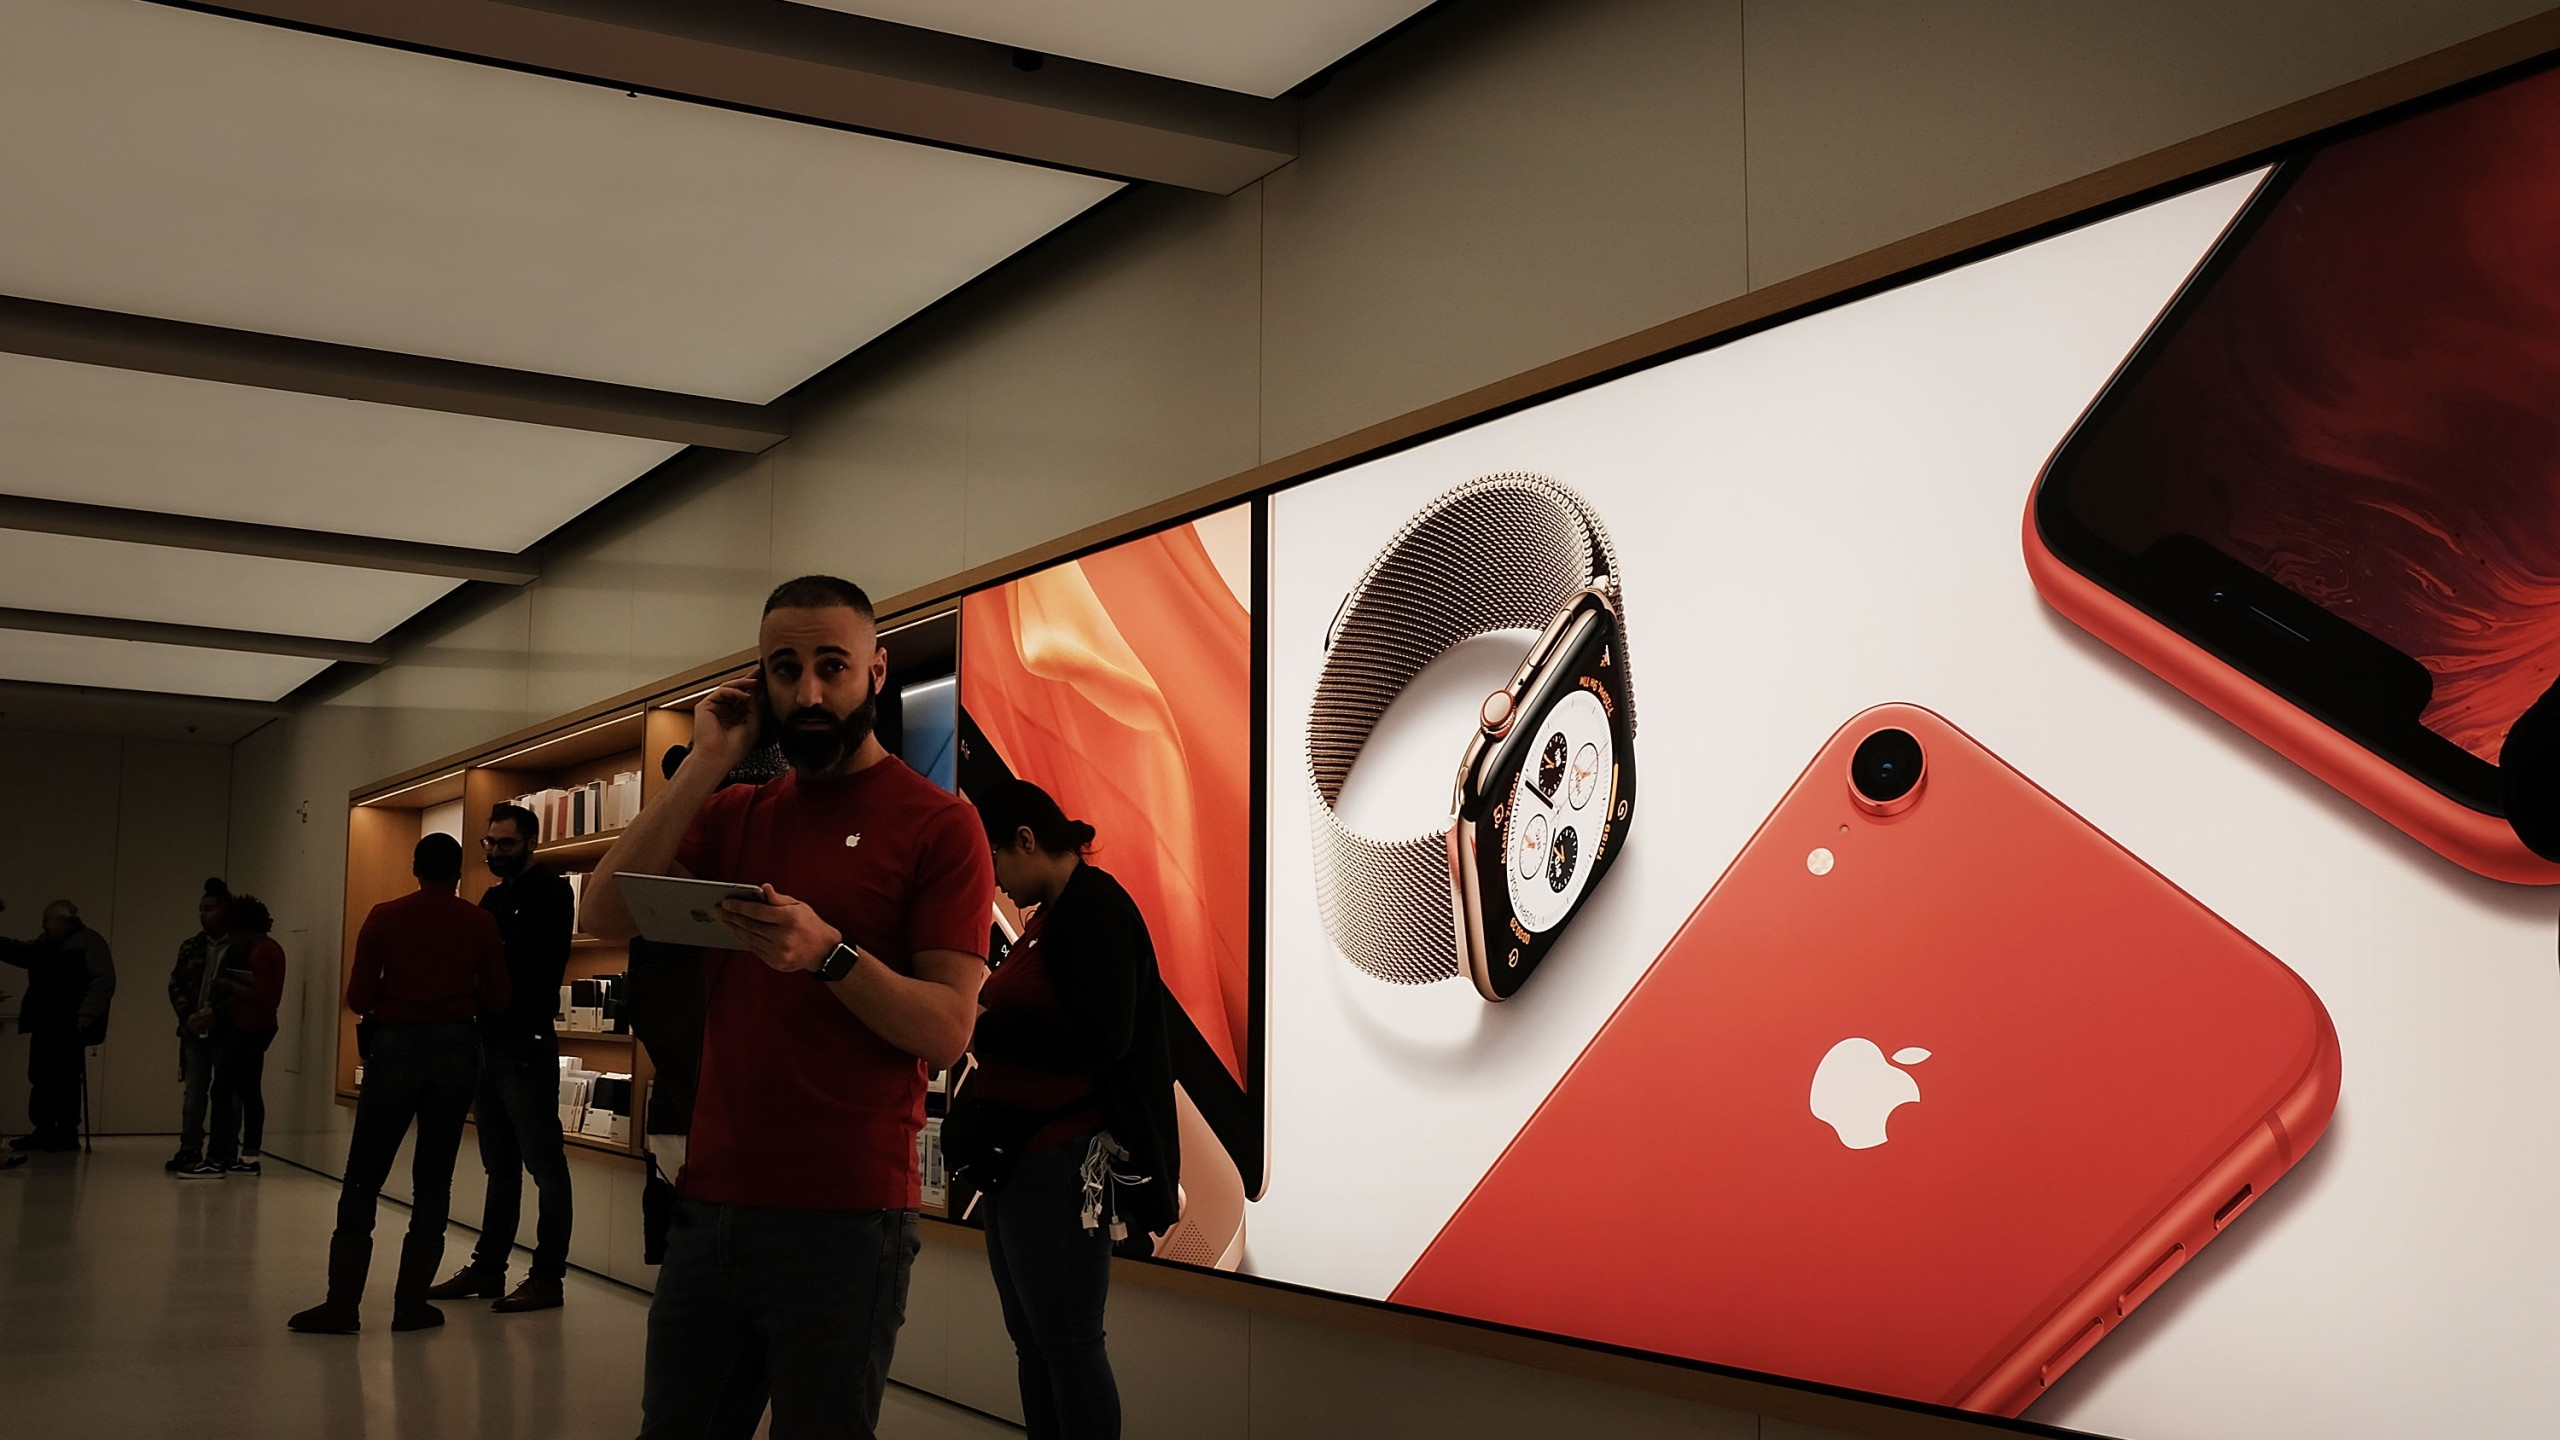 People stand in an Apple store in lower Manhattan on Nov. 20, 2018 in New York City. (Credit: Spencer Platt/Getty Images)